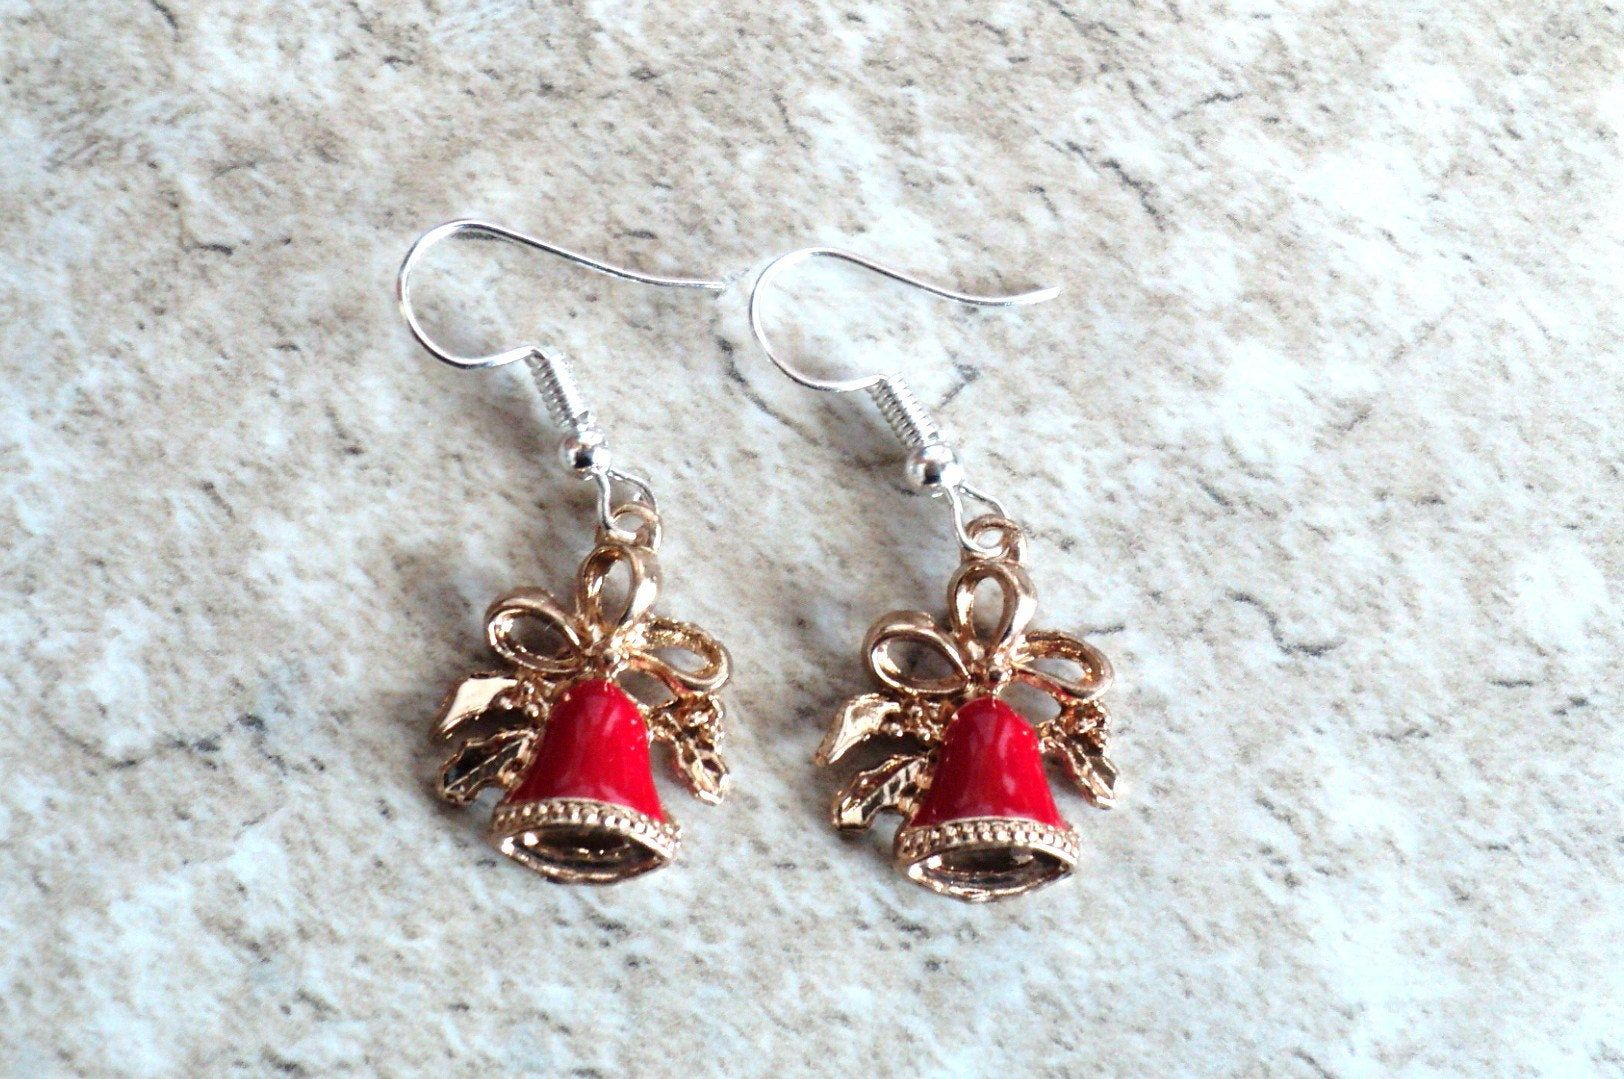 Festive Red Christmas Bell Earrings Holiday Charm Earrings Red Bells Christmas Gift Gift For Her Jewelry Gift Vintage Christmas Jewelry Gifts Christmas Gift Jewelry Holiday Charms